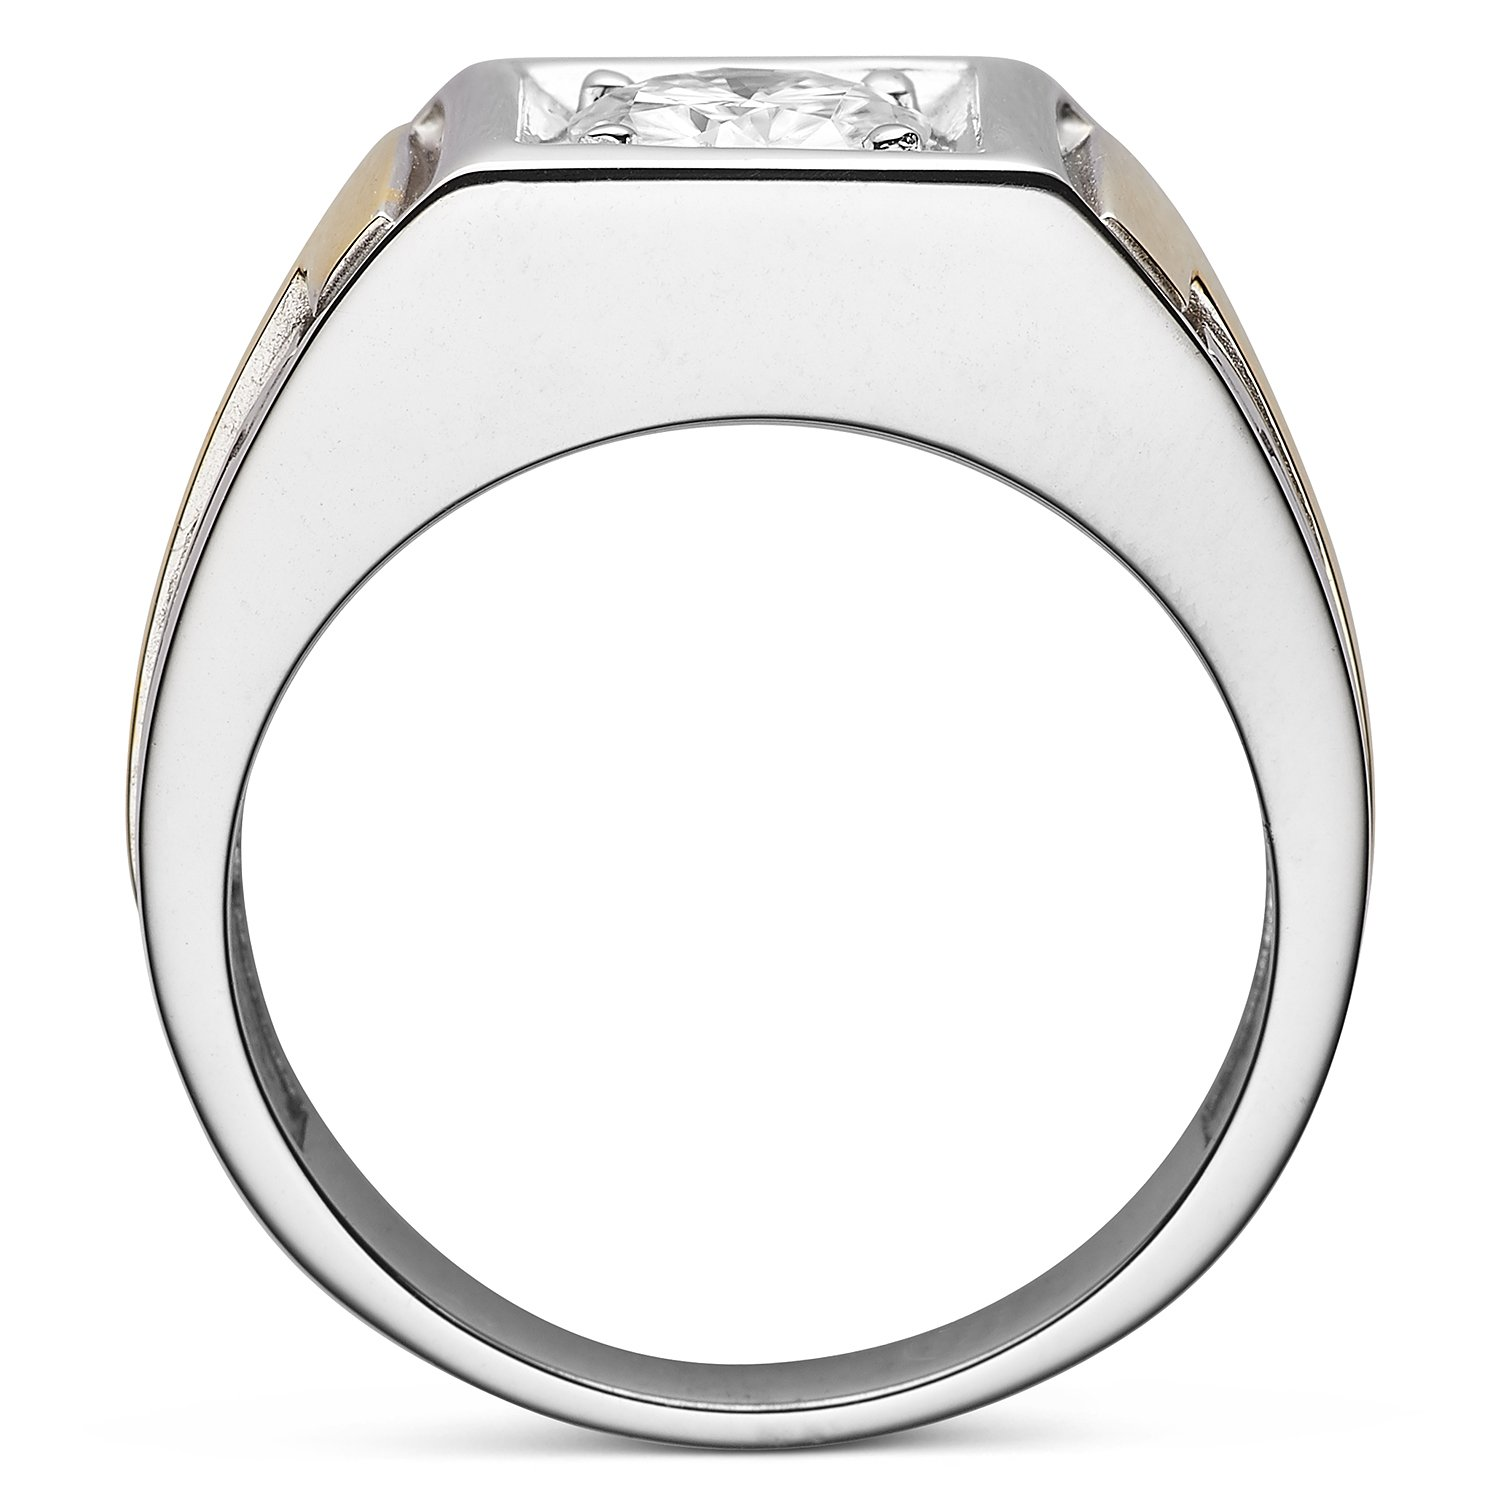 Forever Classic Men�s Round 7.0mm Moissanite Wedding Band-size 11, 1.20ct DEW By Charles & Colvard by Charles & Colvard (Image #3)